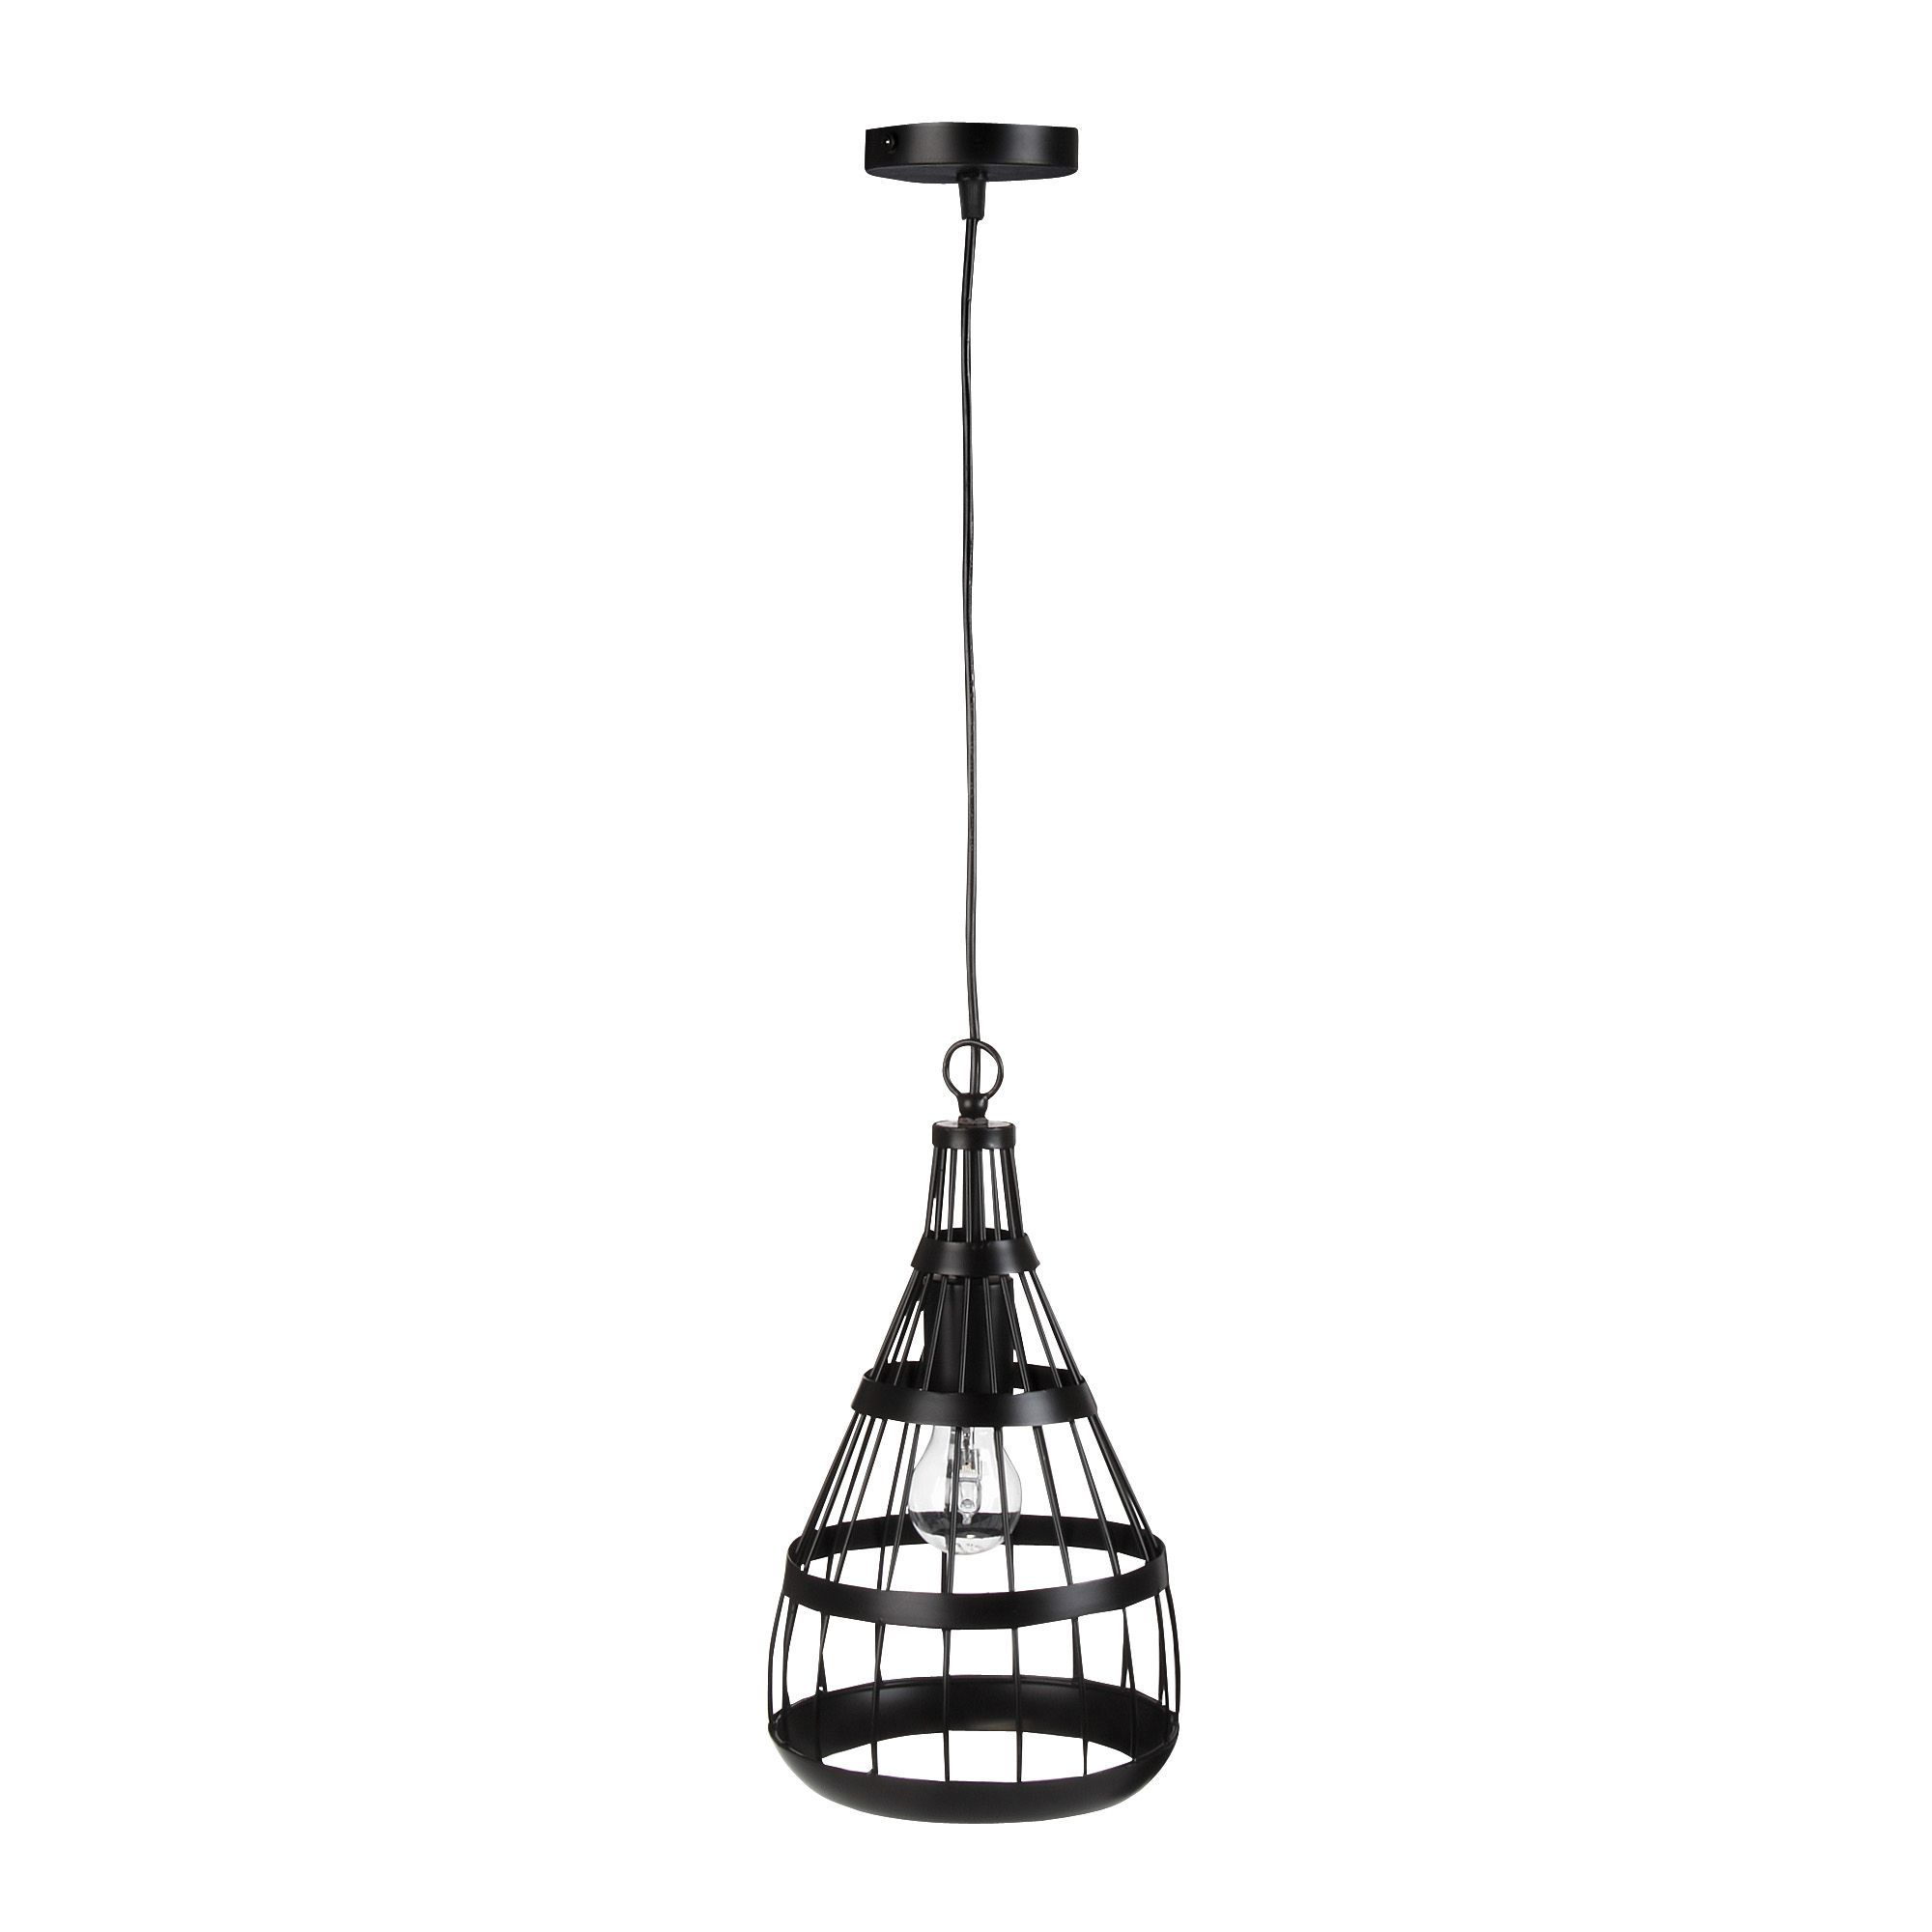 Suspension acier noir h36cm turenne suspensions for Luminaire noir suspension